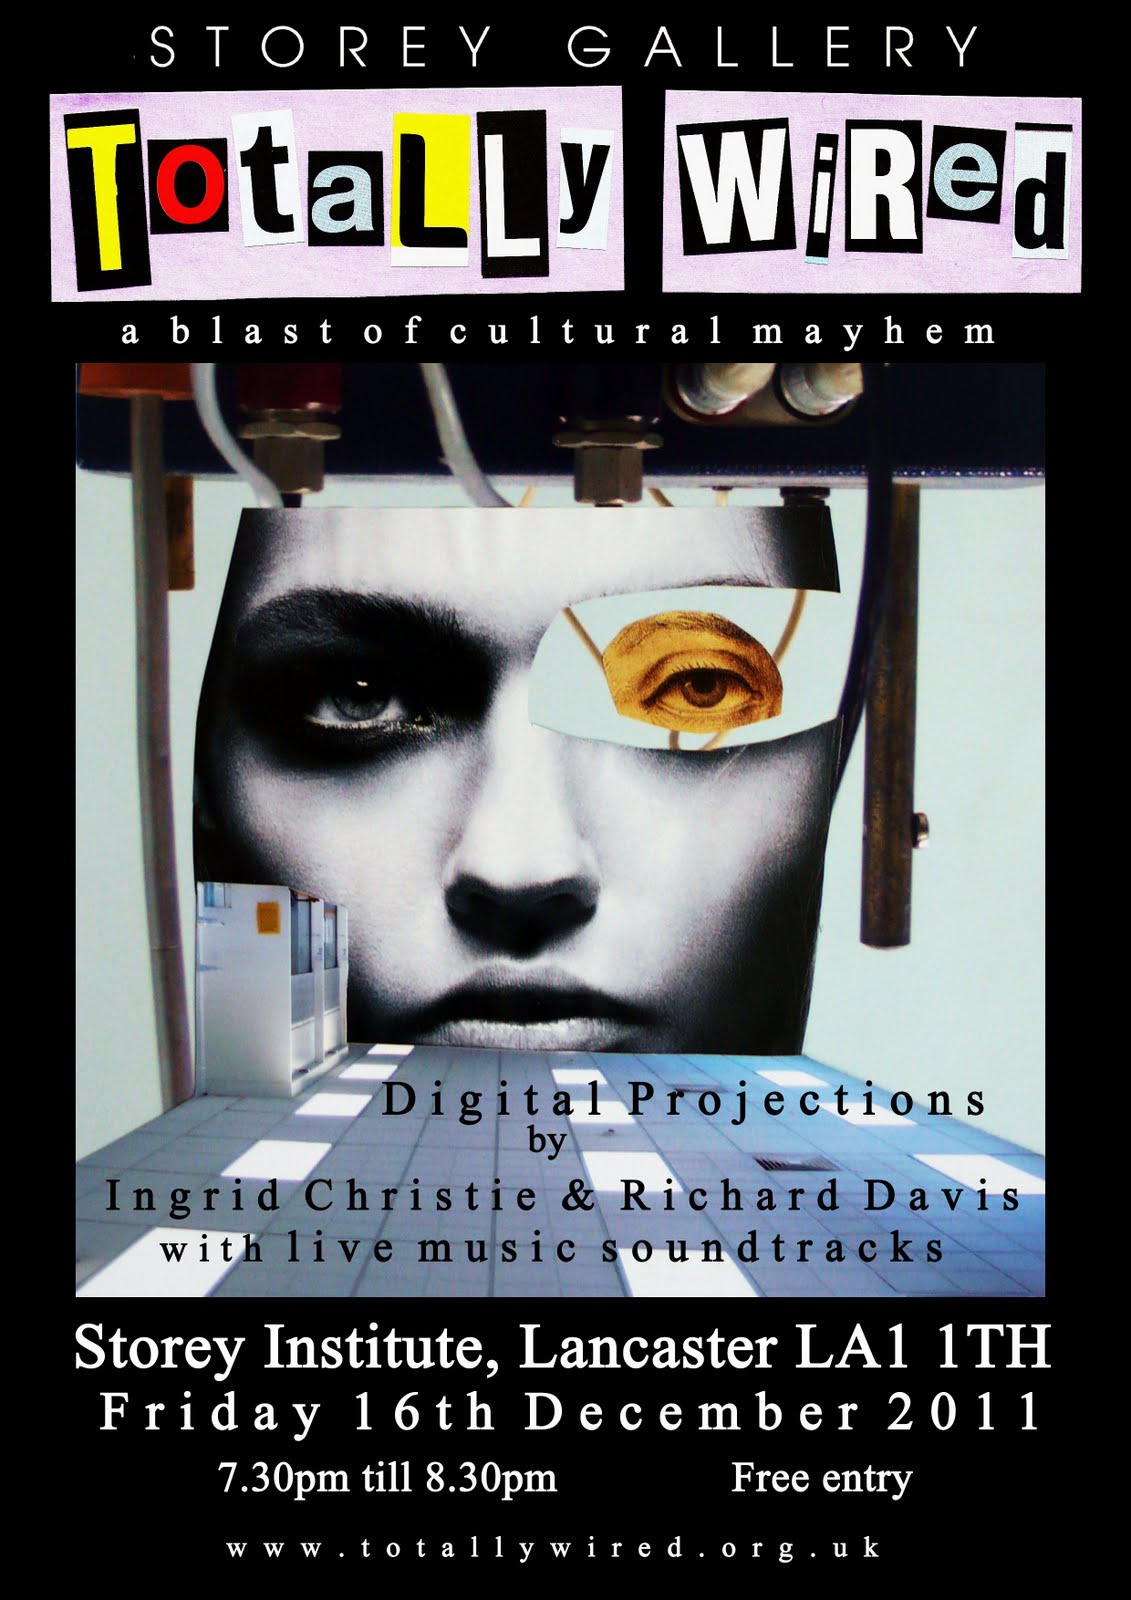 TOTALLY WIRED @the Storey Gallery, Lancaster on Friday 16th December 2011, ...